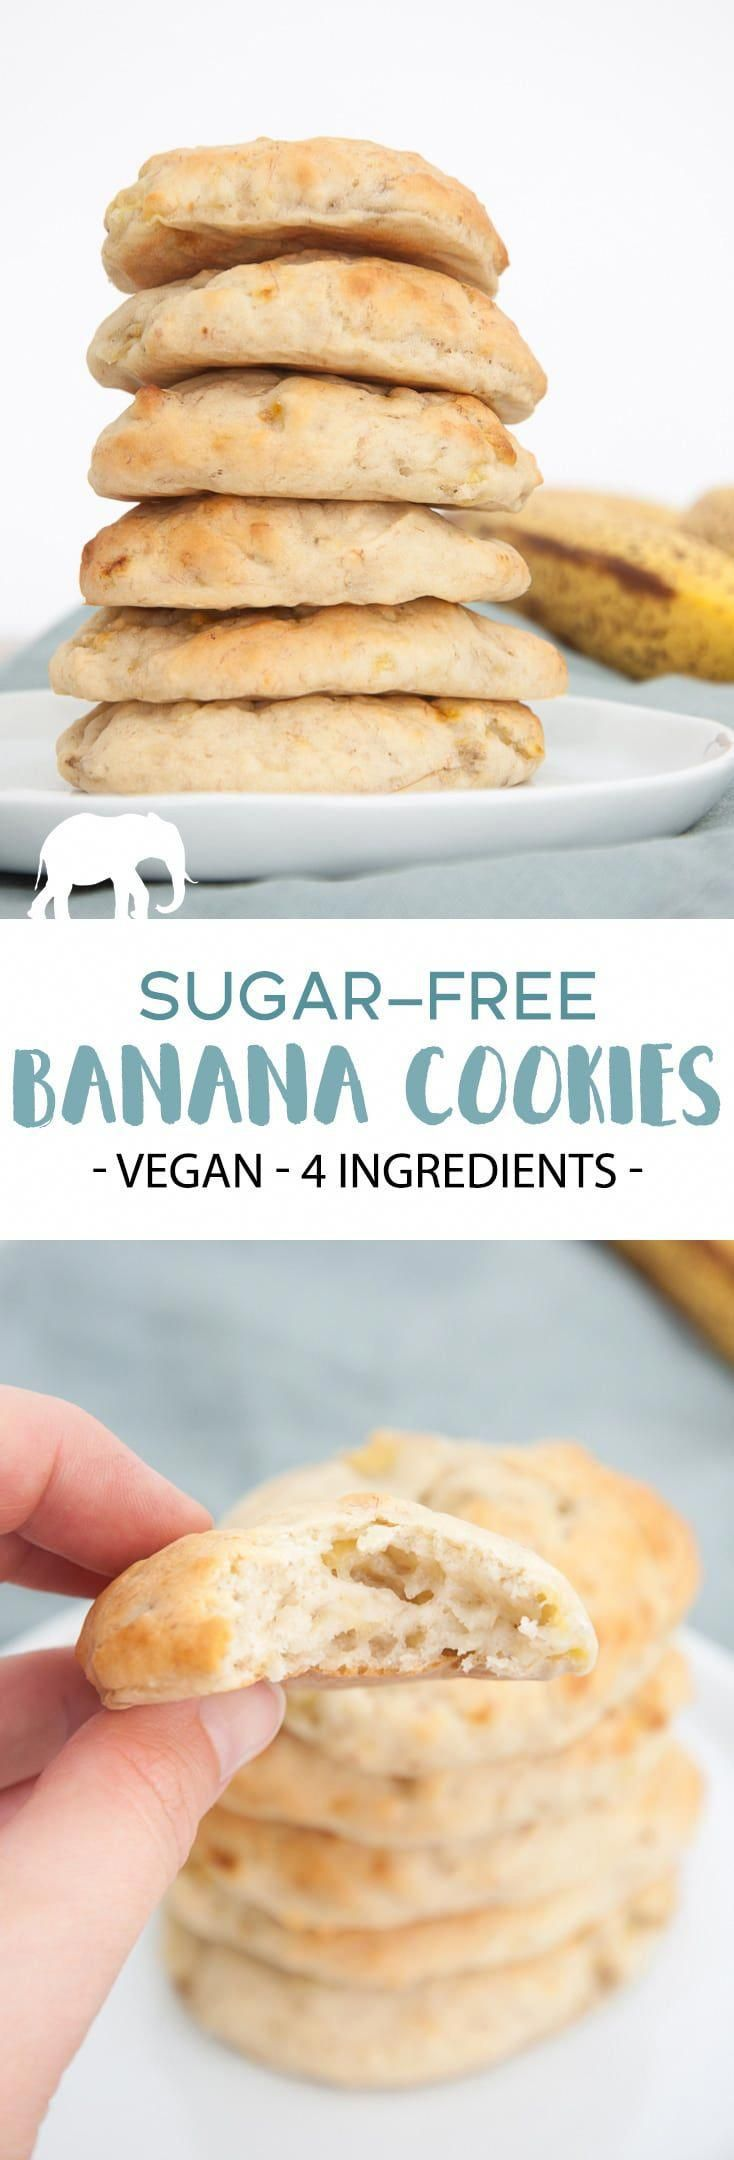 You'll only need 4 ingredients for these Banana Cookies. They are sugar-free, oil-free, and vegan!  